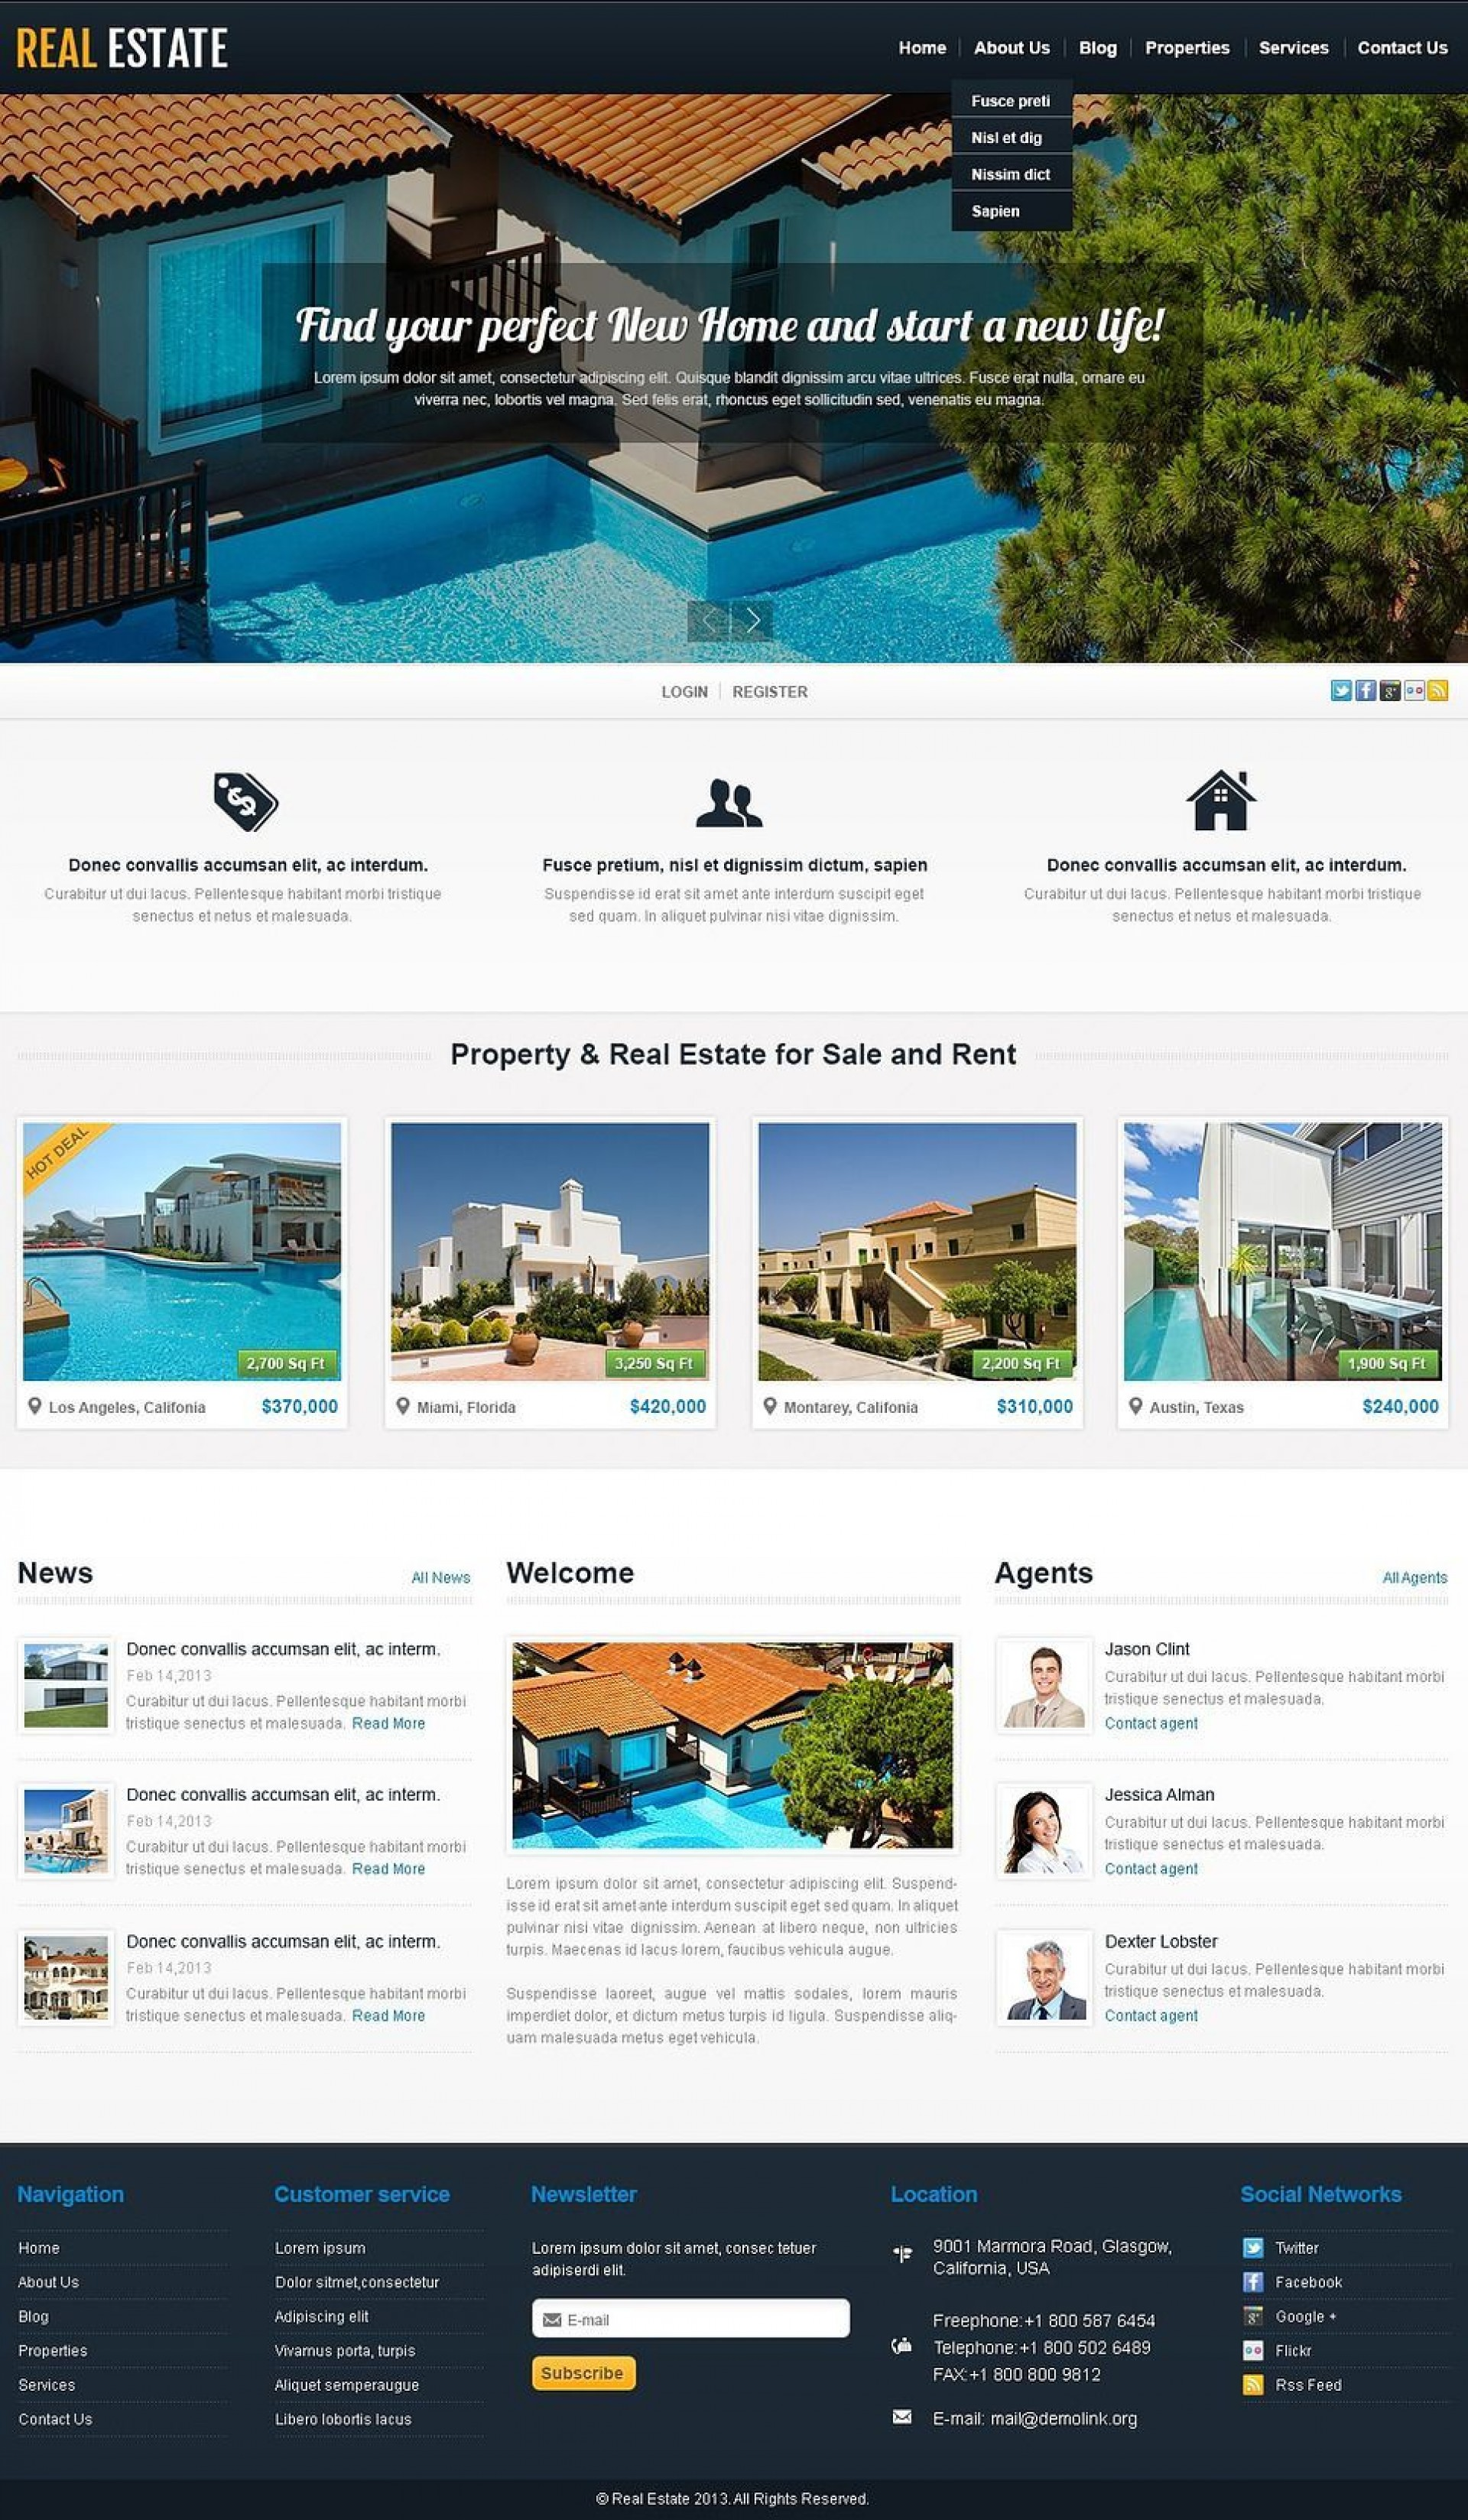 000 Exceptional Real Estate Template Wordpres High Resolution  Homepres - Theme Free Download Realtyspace1920